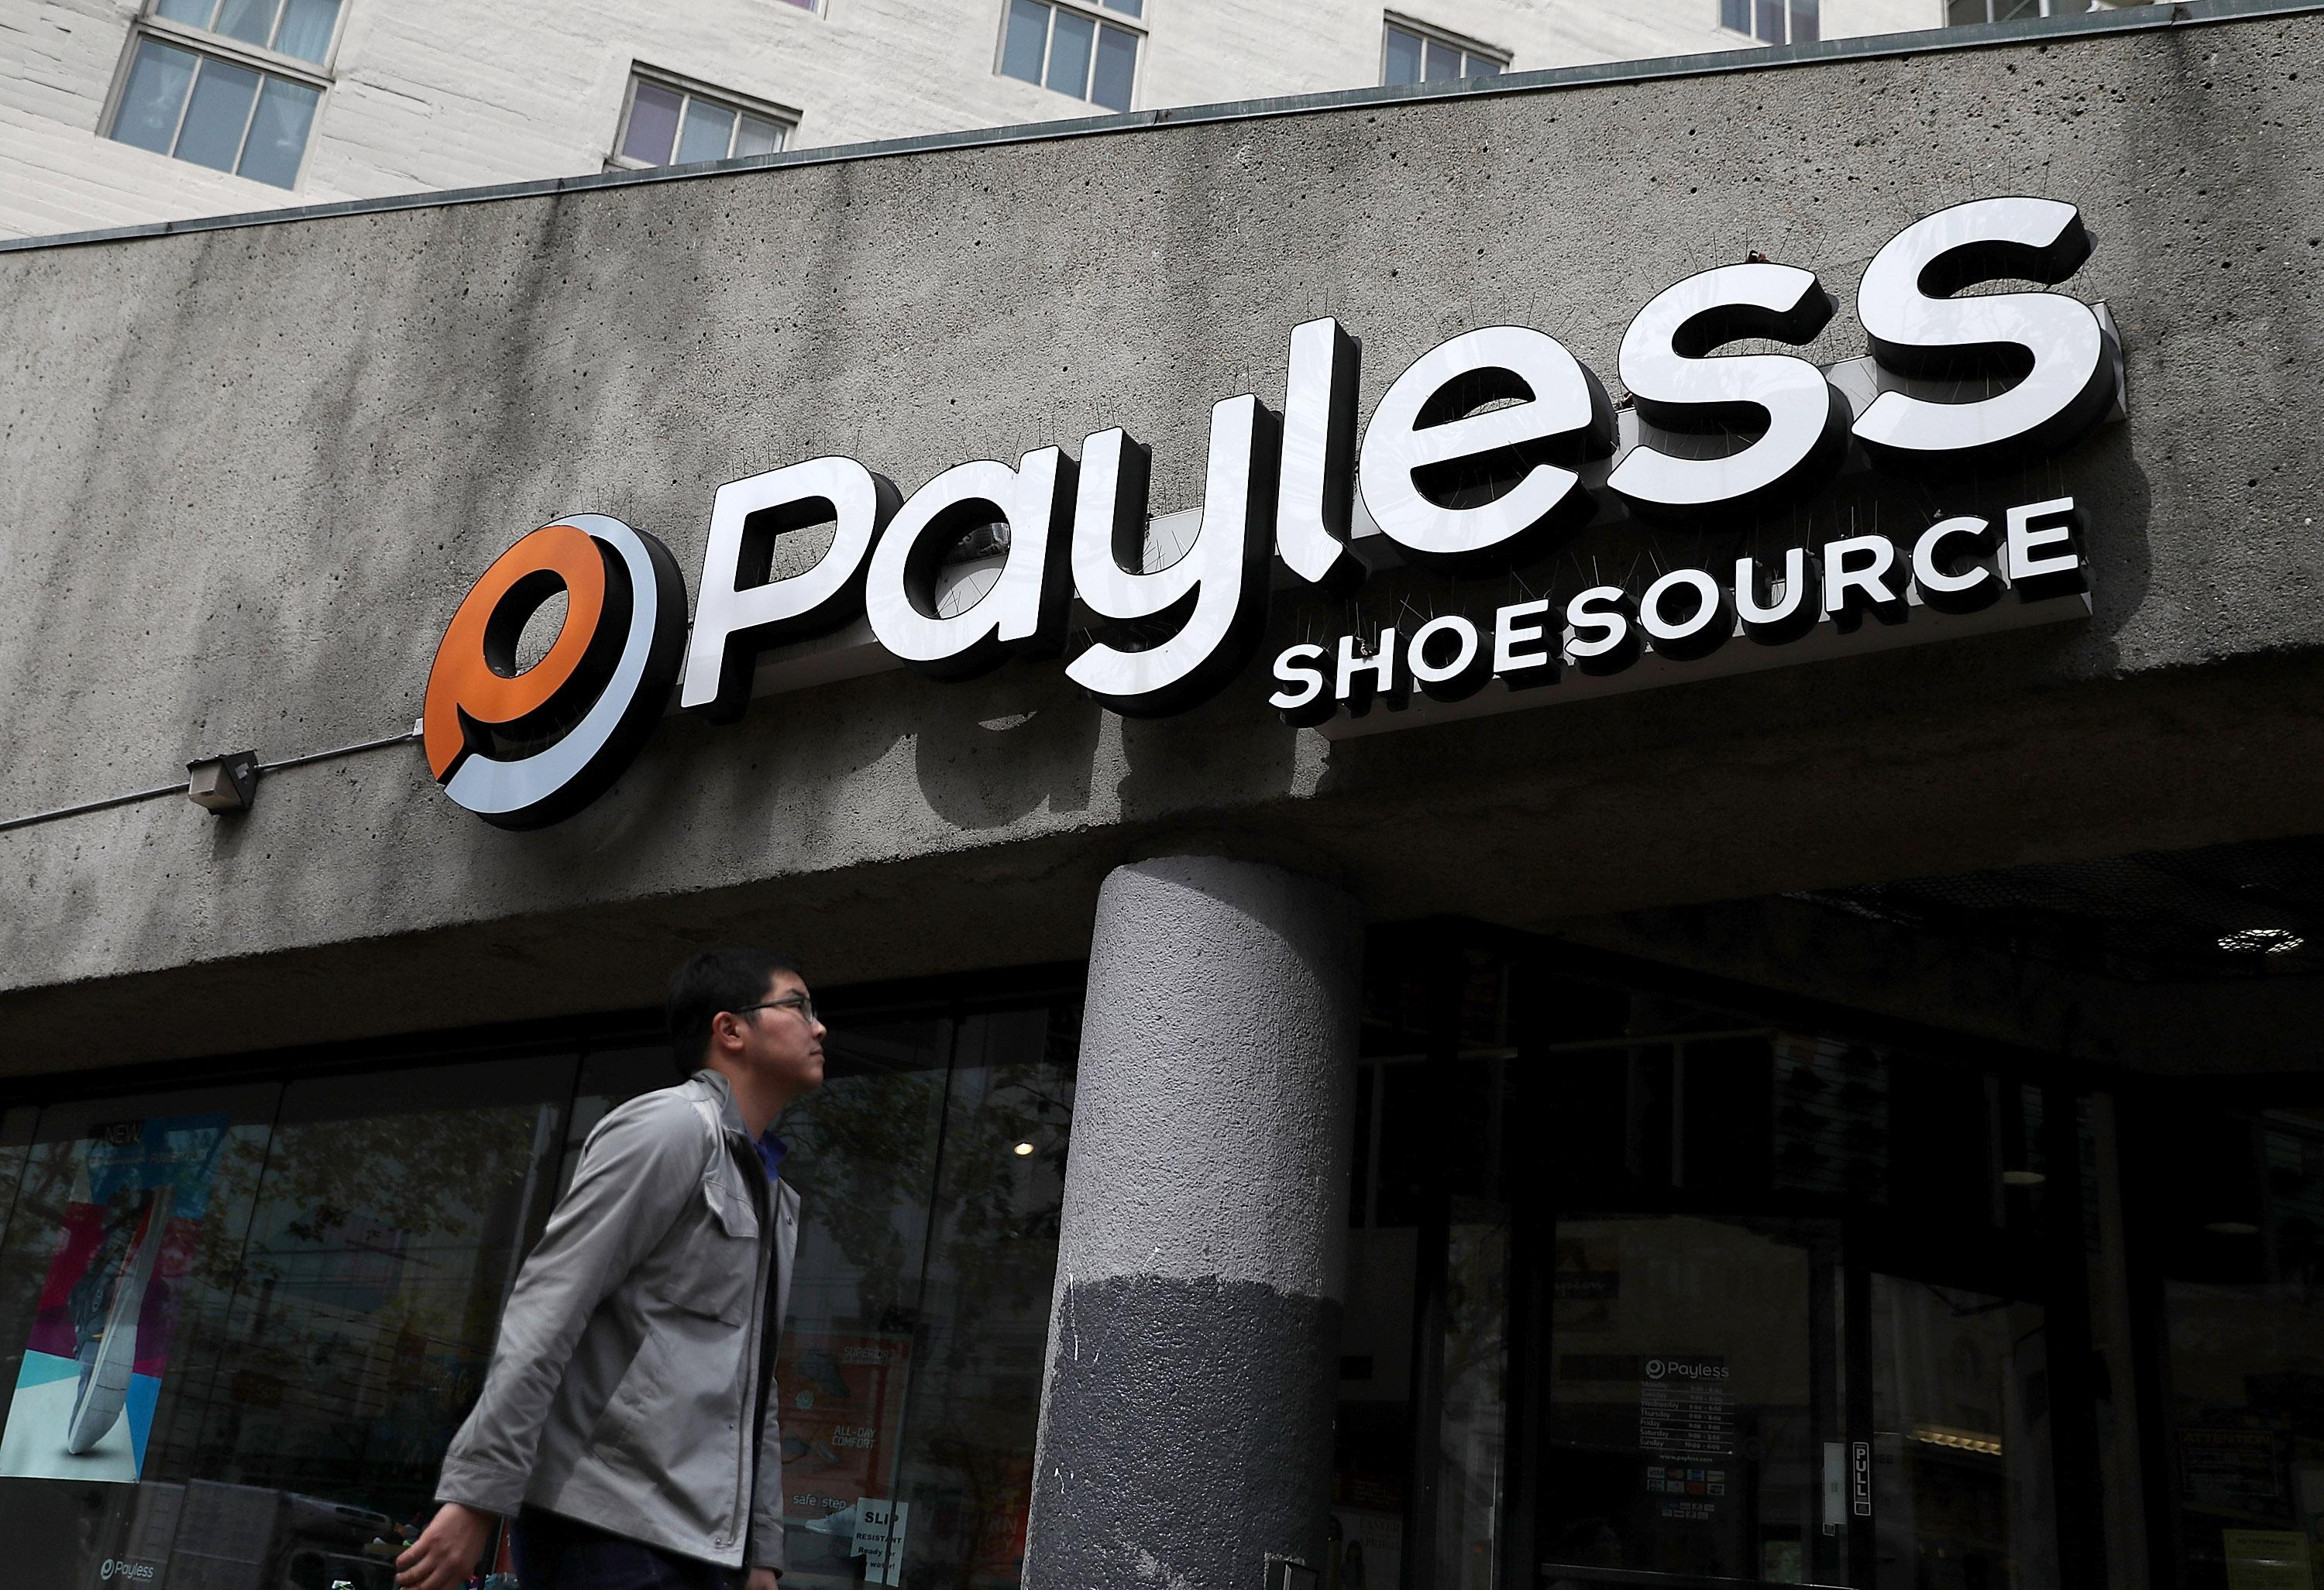 Mirror kills 2-year-old girl shopping for shoes at Payless